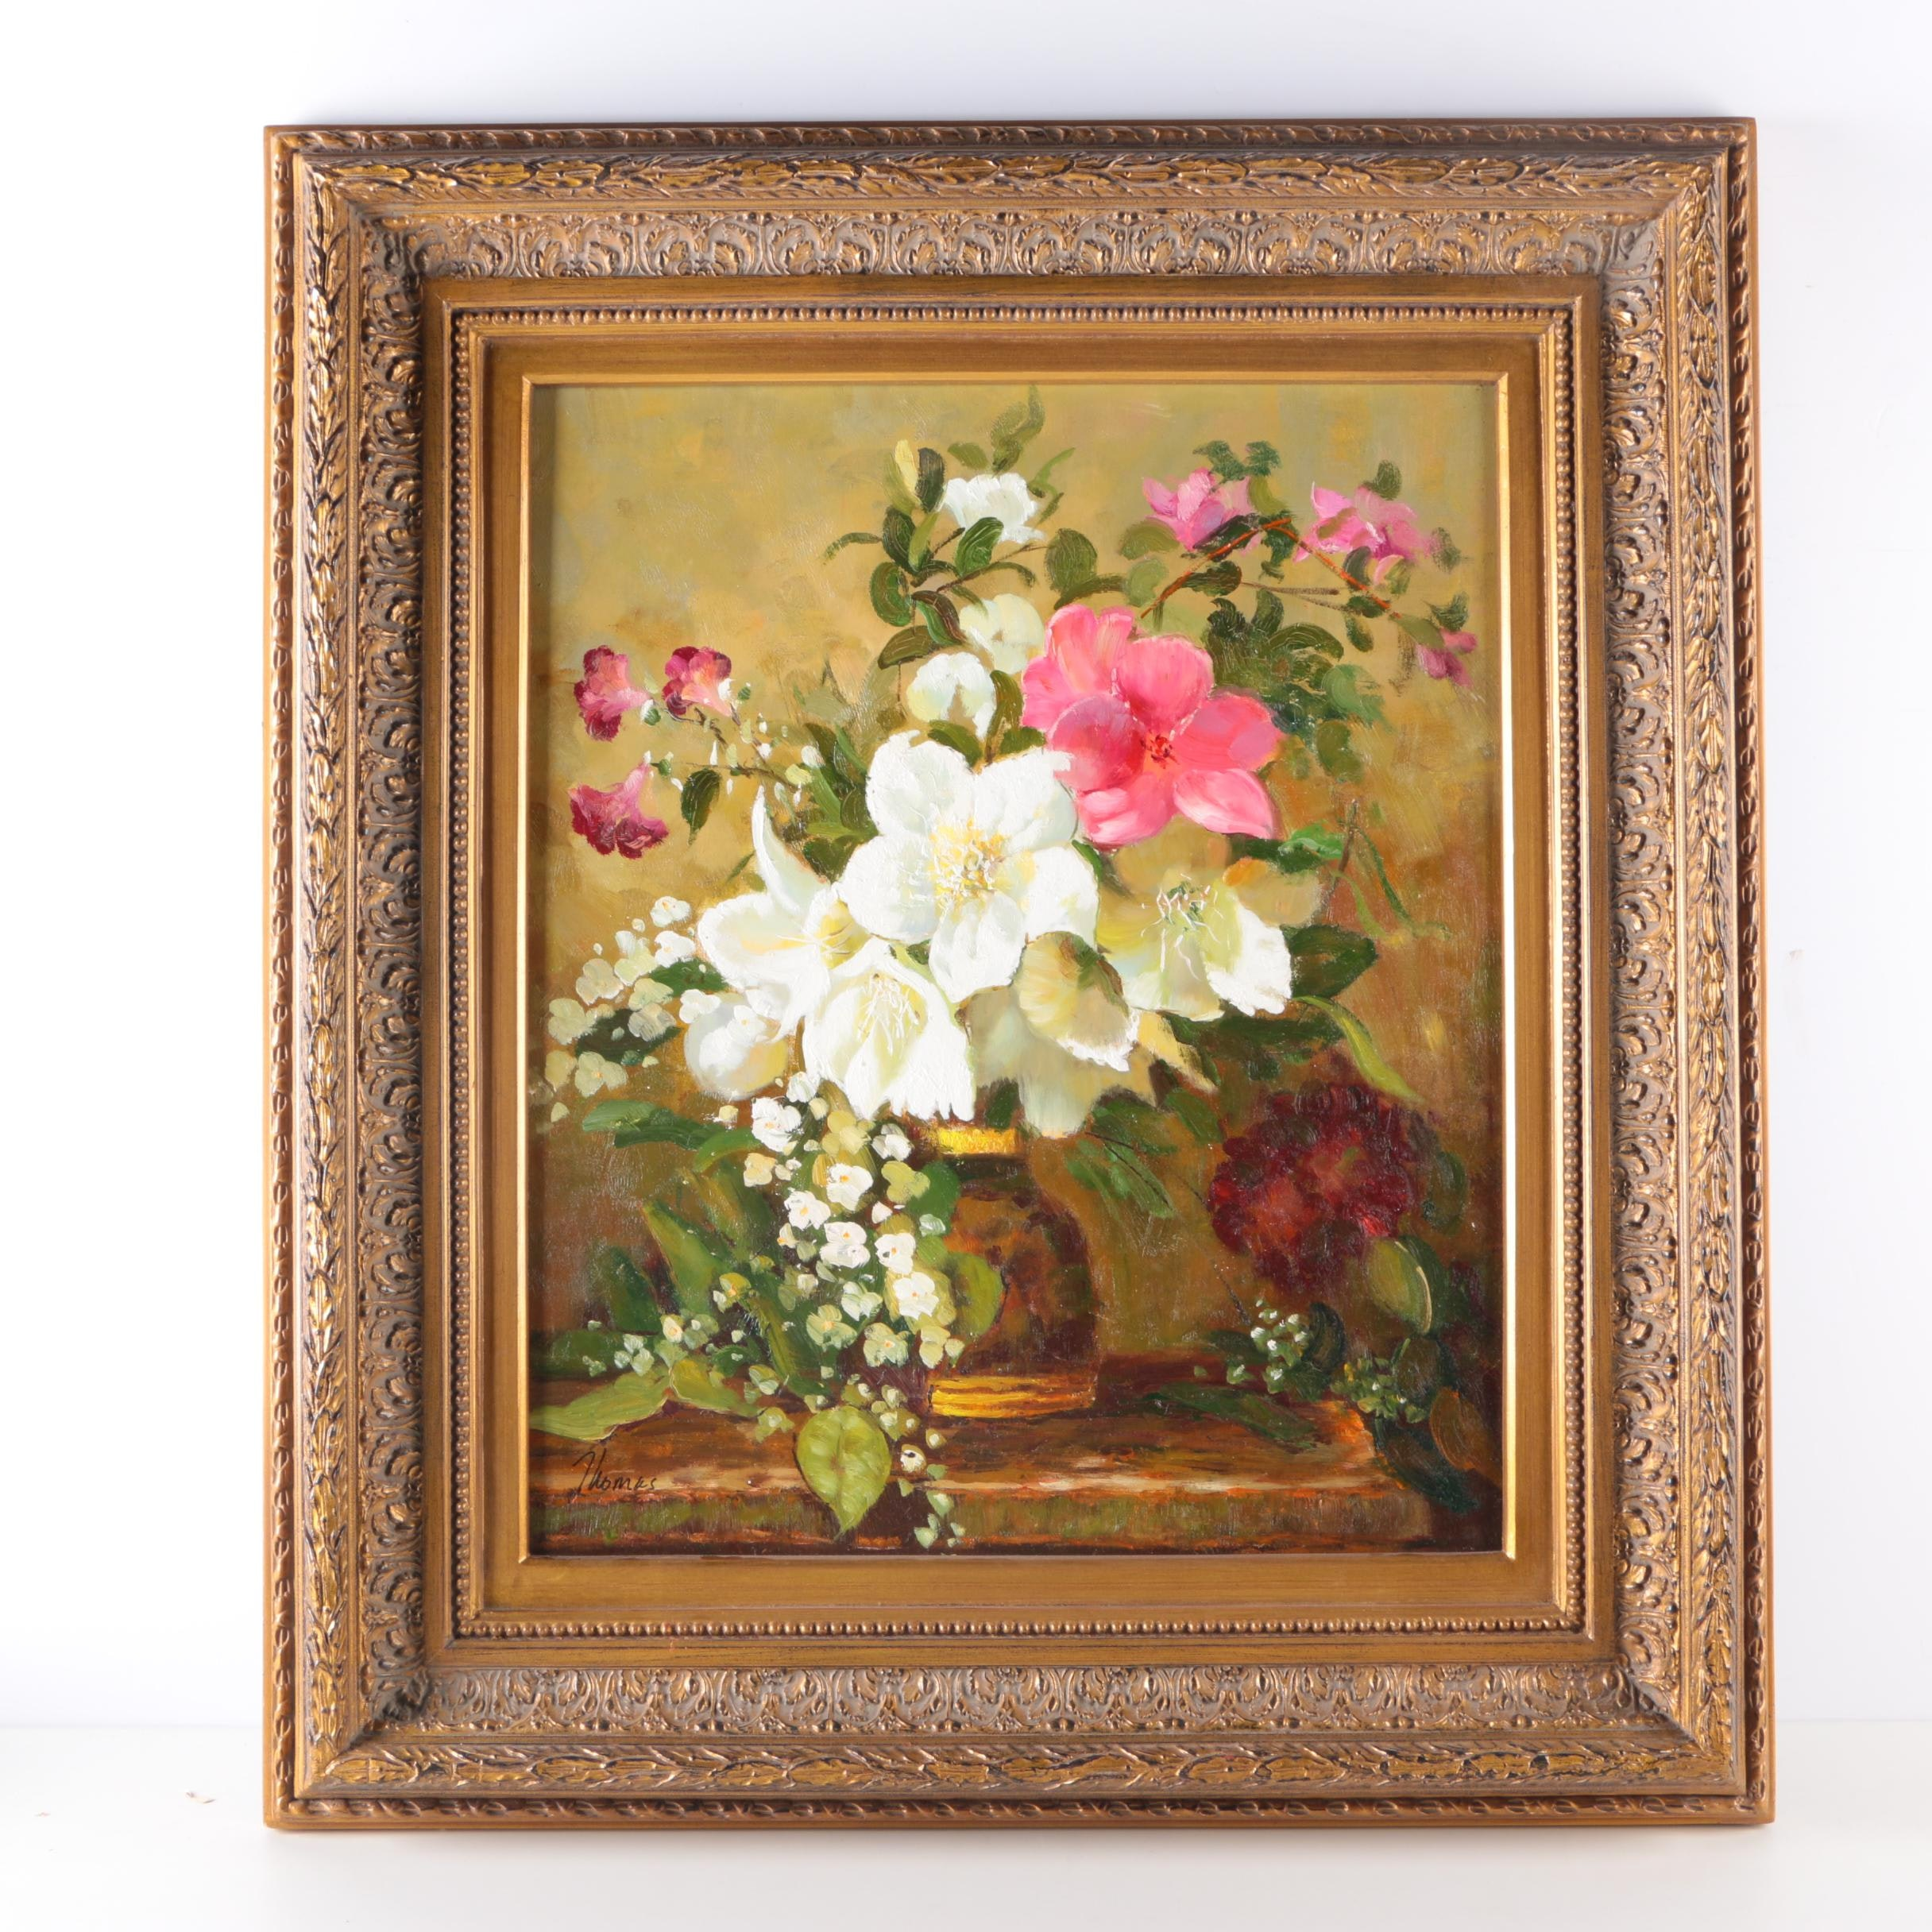 Thomas Oil Painting on Canvas Floral Still Life